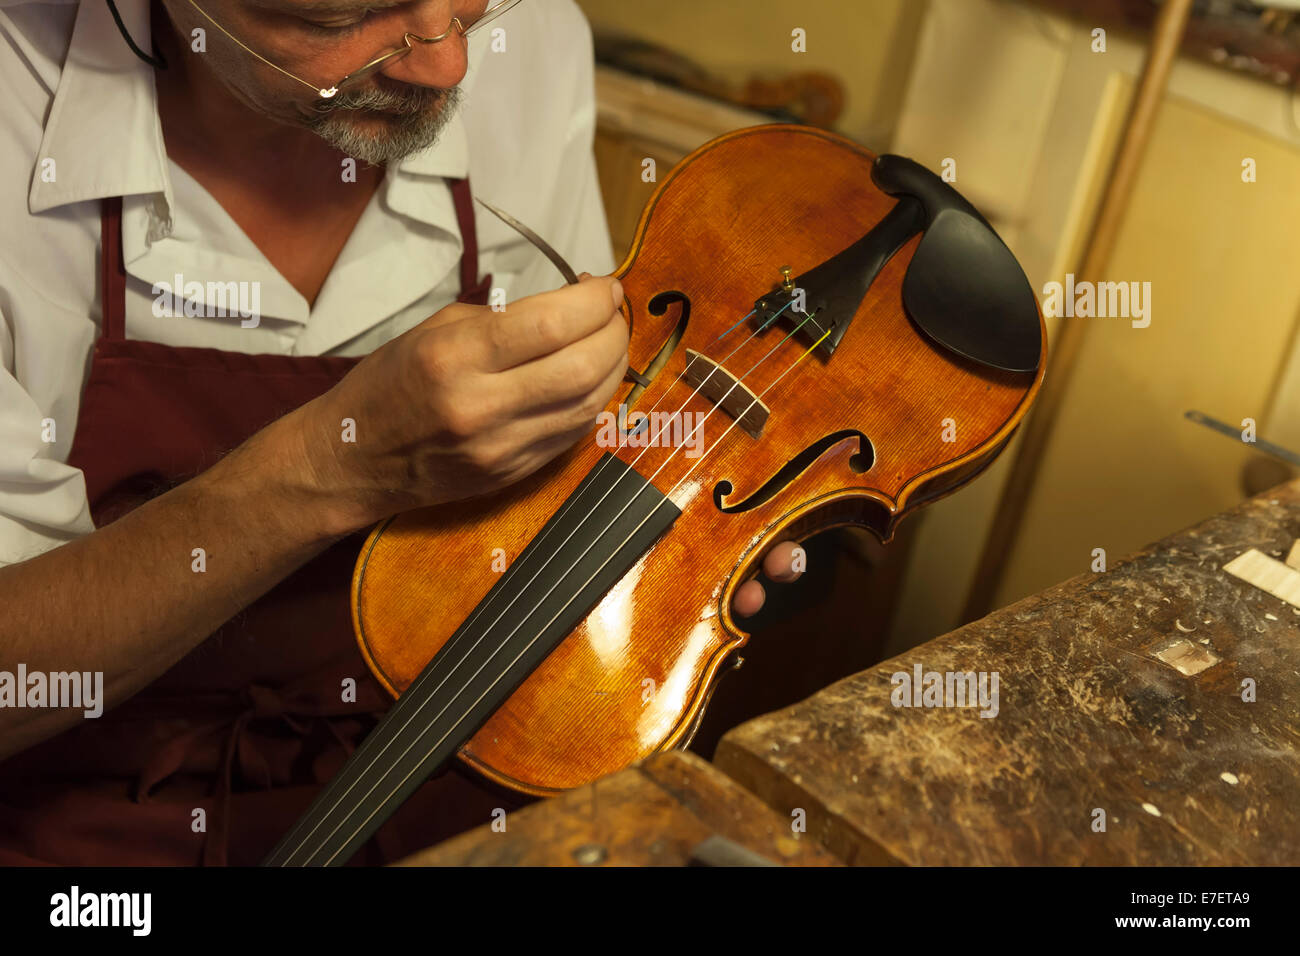 Violin maker making adjustments to the sound post with special tool i - Stock Image